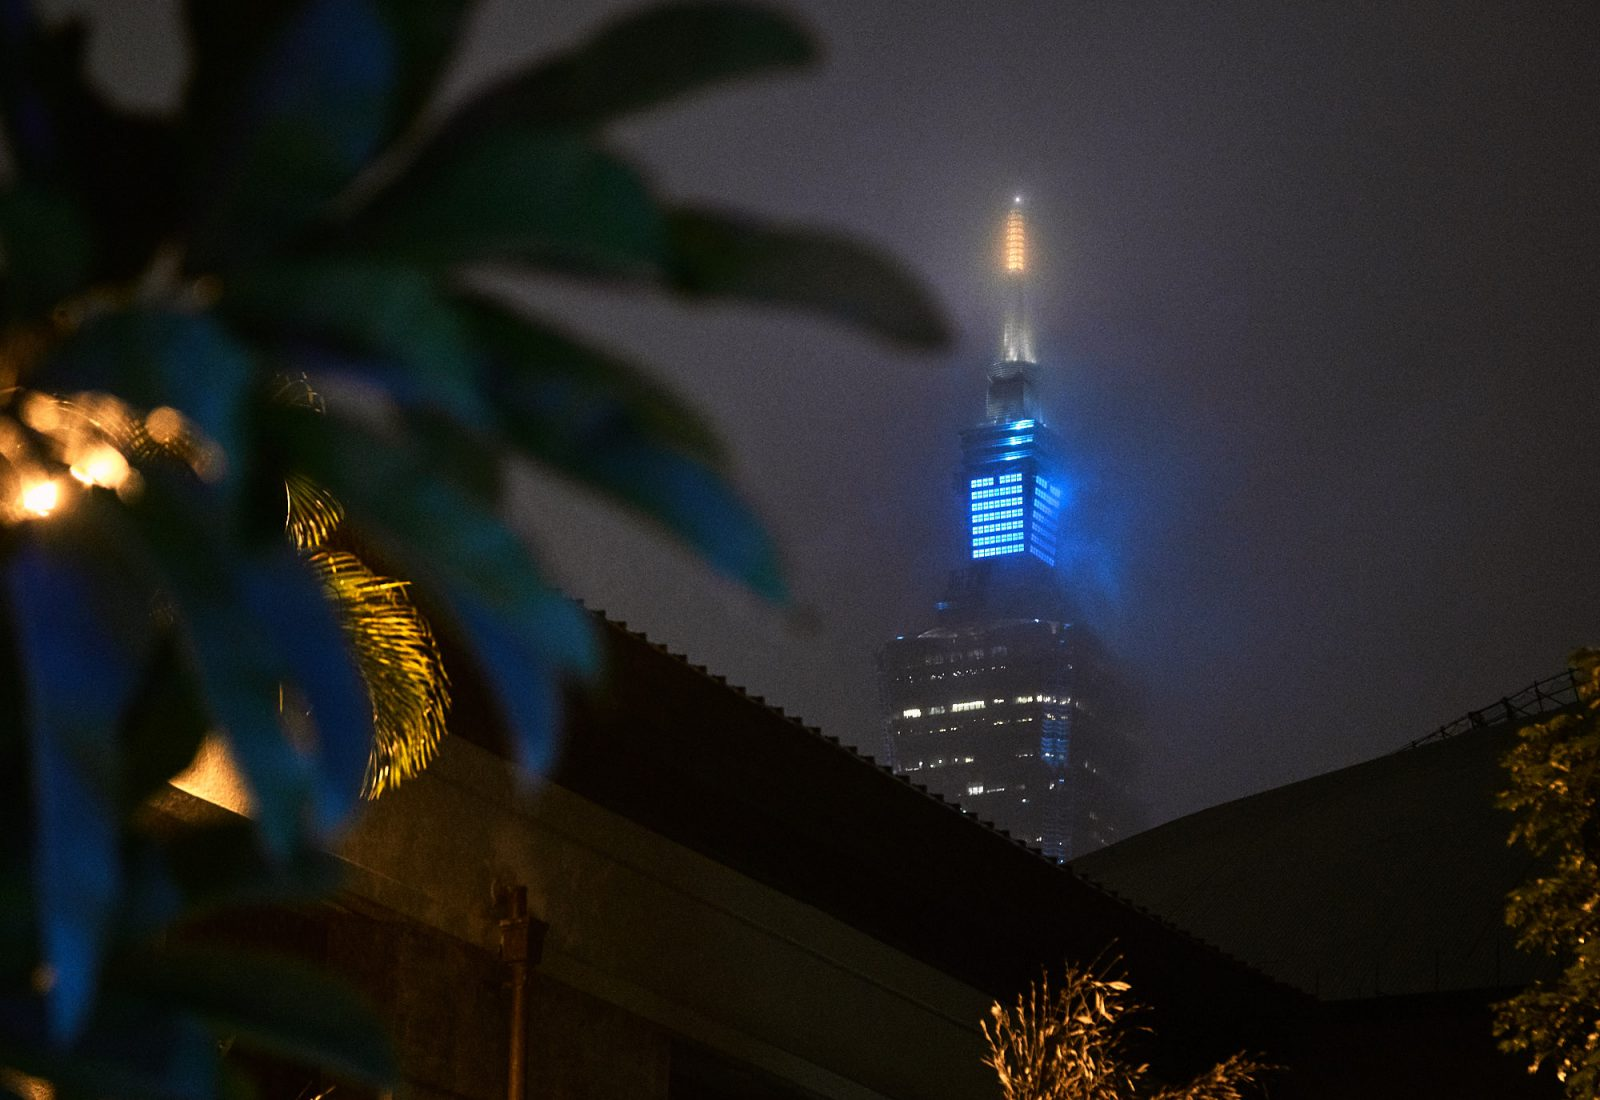 Taipei 101. TaipeiINstyle by Cedric Paquet. (All image rights reserved by www.cedricpaquet.com)